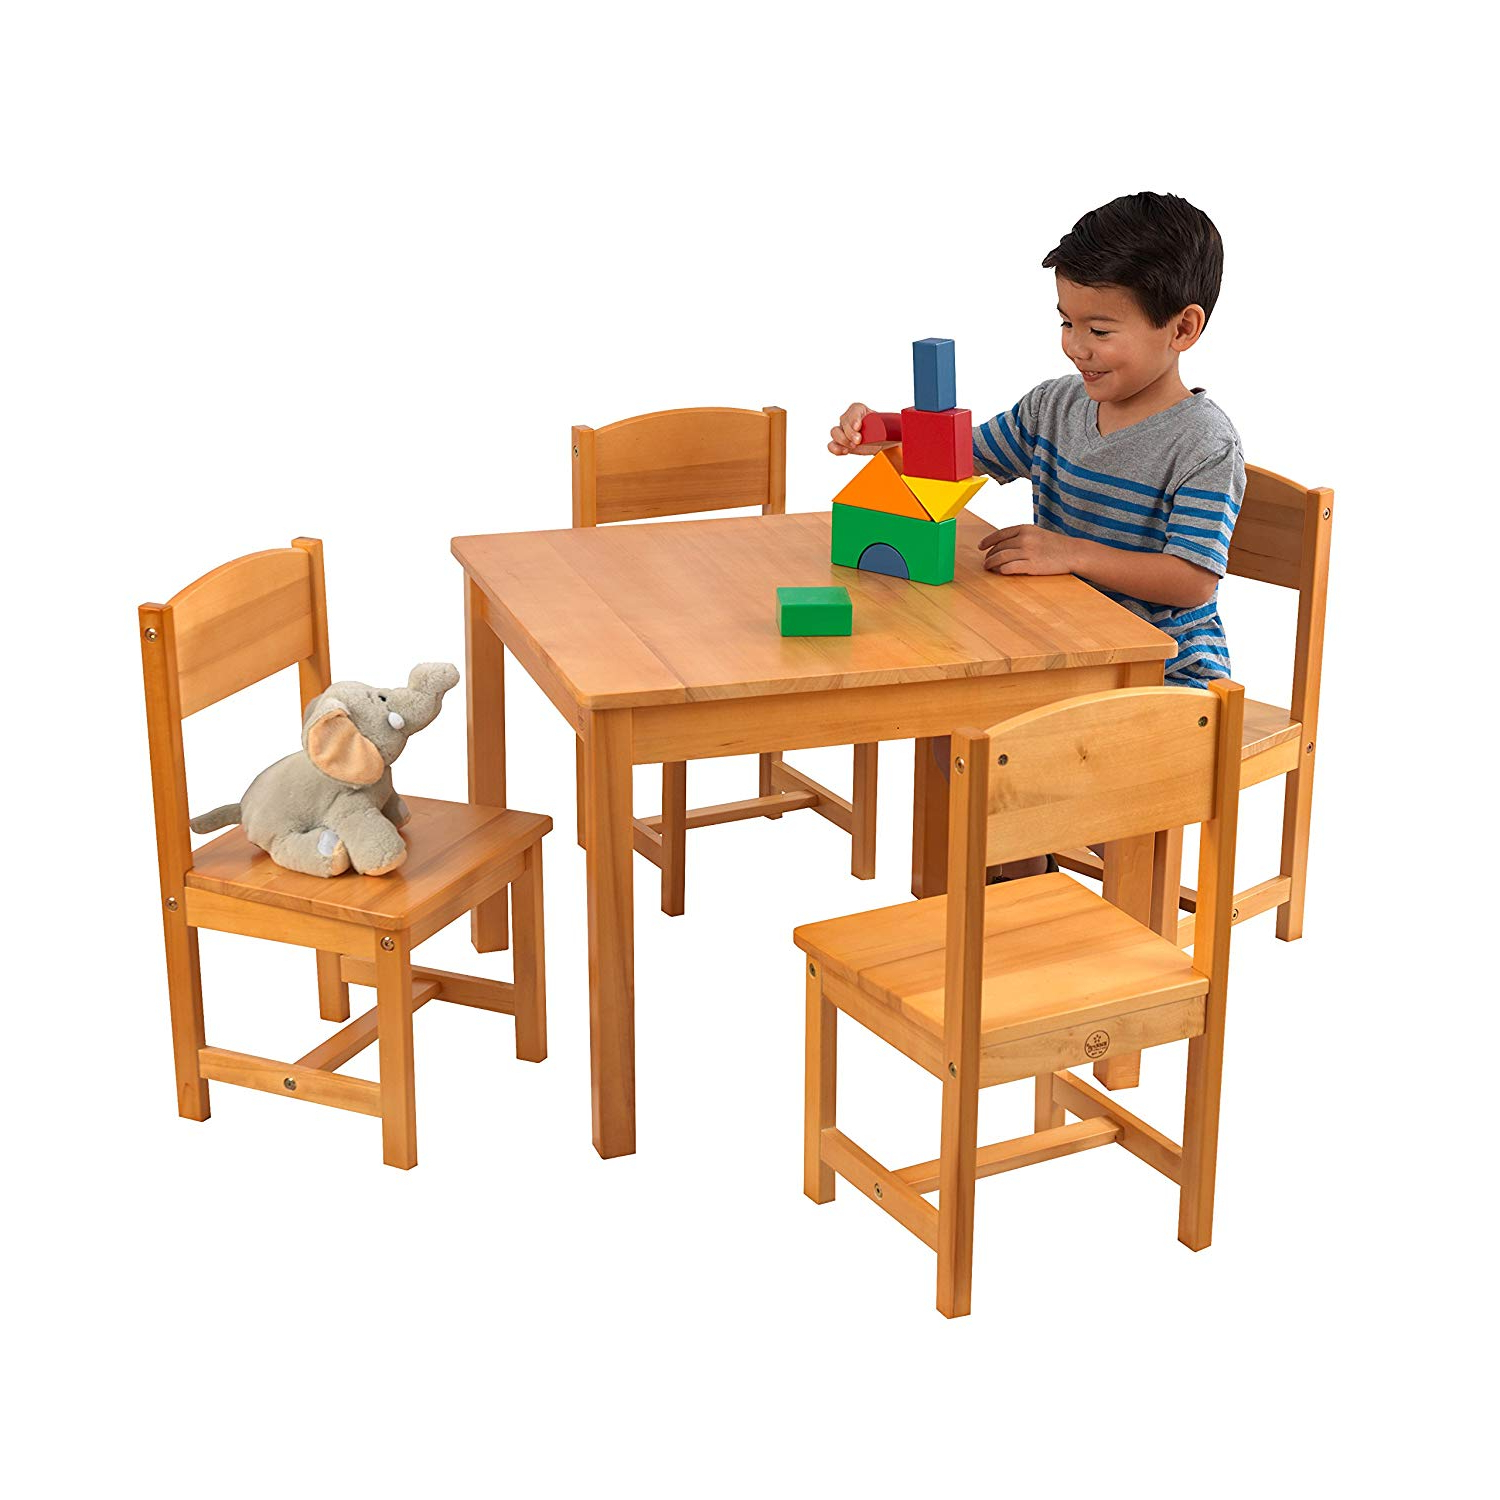 Newest Amazon: Kidkraft 21421 Farmhouse Table & 4 Chair Set, Natural with regard to Falmer 3 Piece Solid Wood Dining Sets